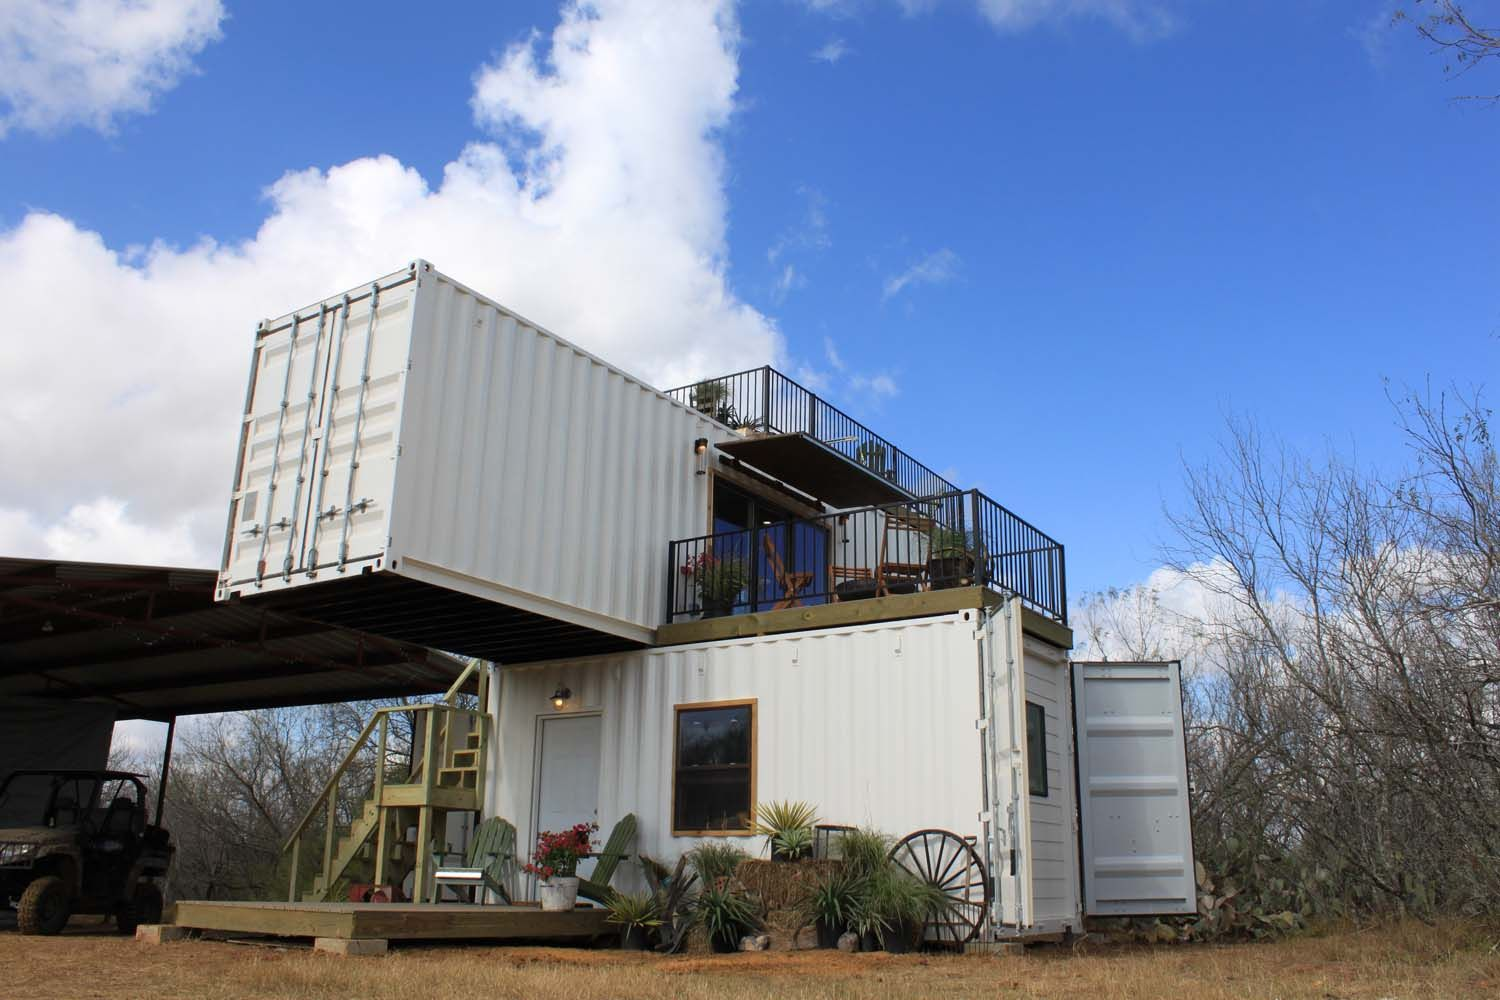 Backcountry Container Homes Container house, House